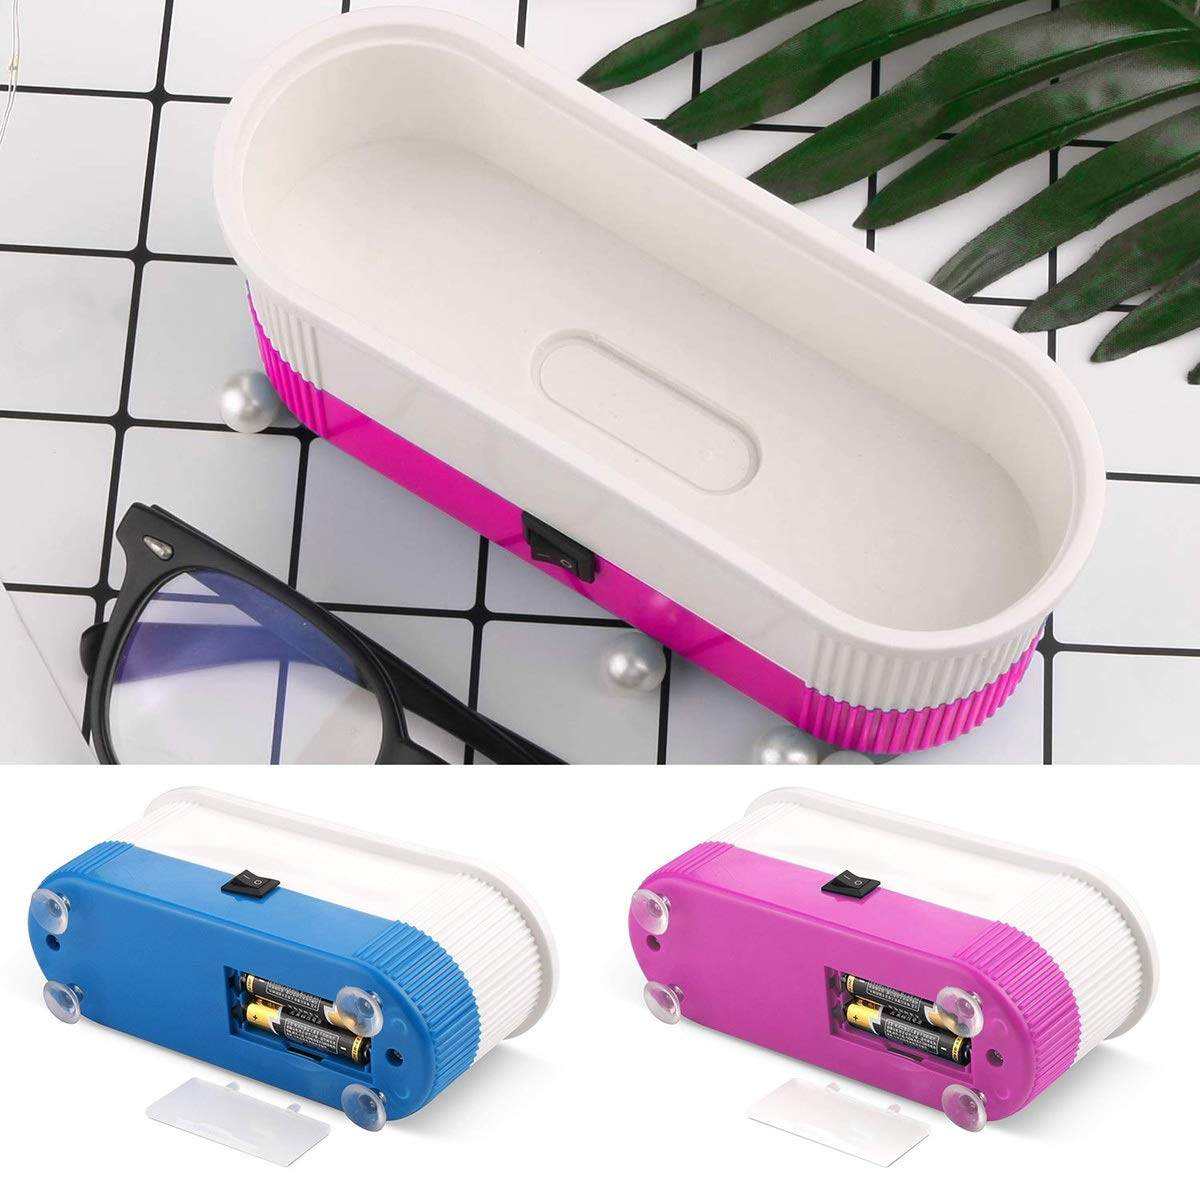 Portable Ultrasonic Cleaner Machine 3-In-1 for Contact Lenses Eyeglasses Watches, Rings, Necklaces, Coins, Razors, Dentures, Combs (Color : Pink)